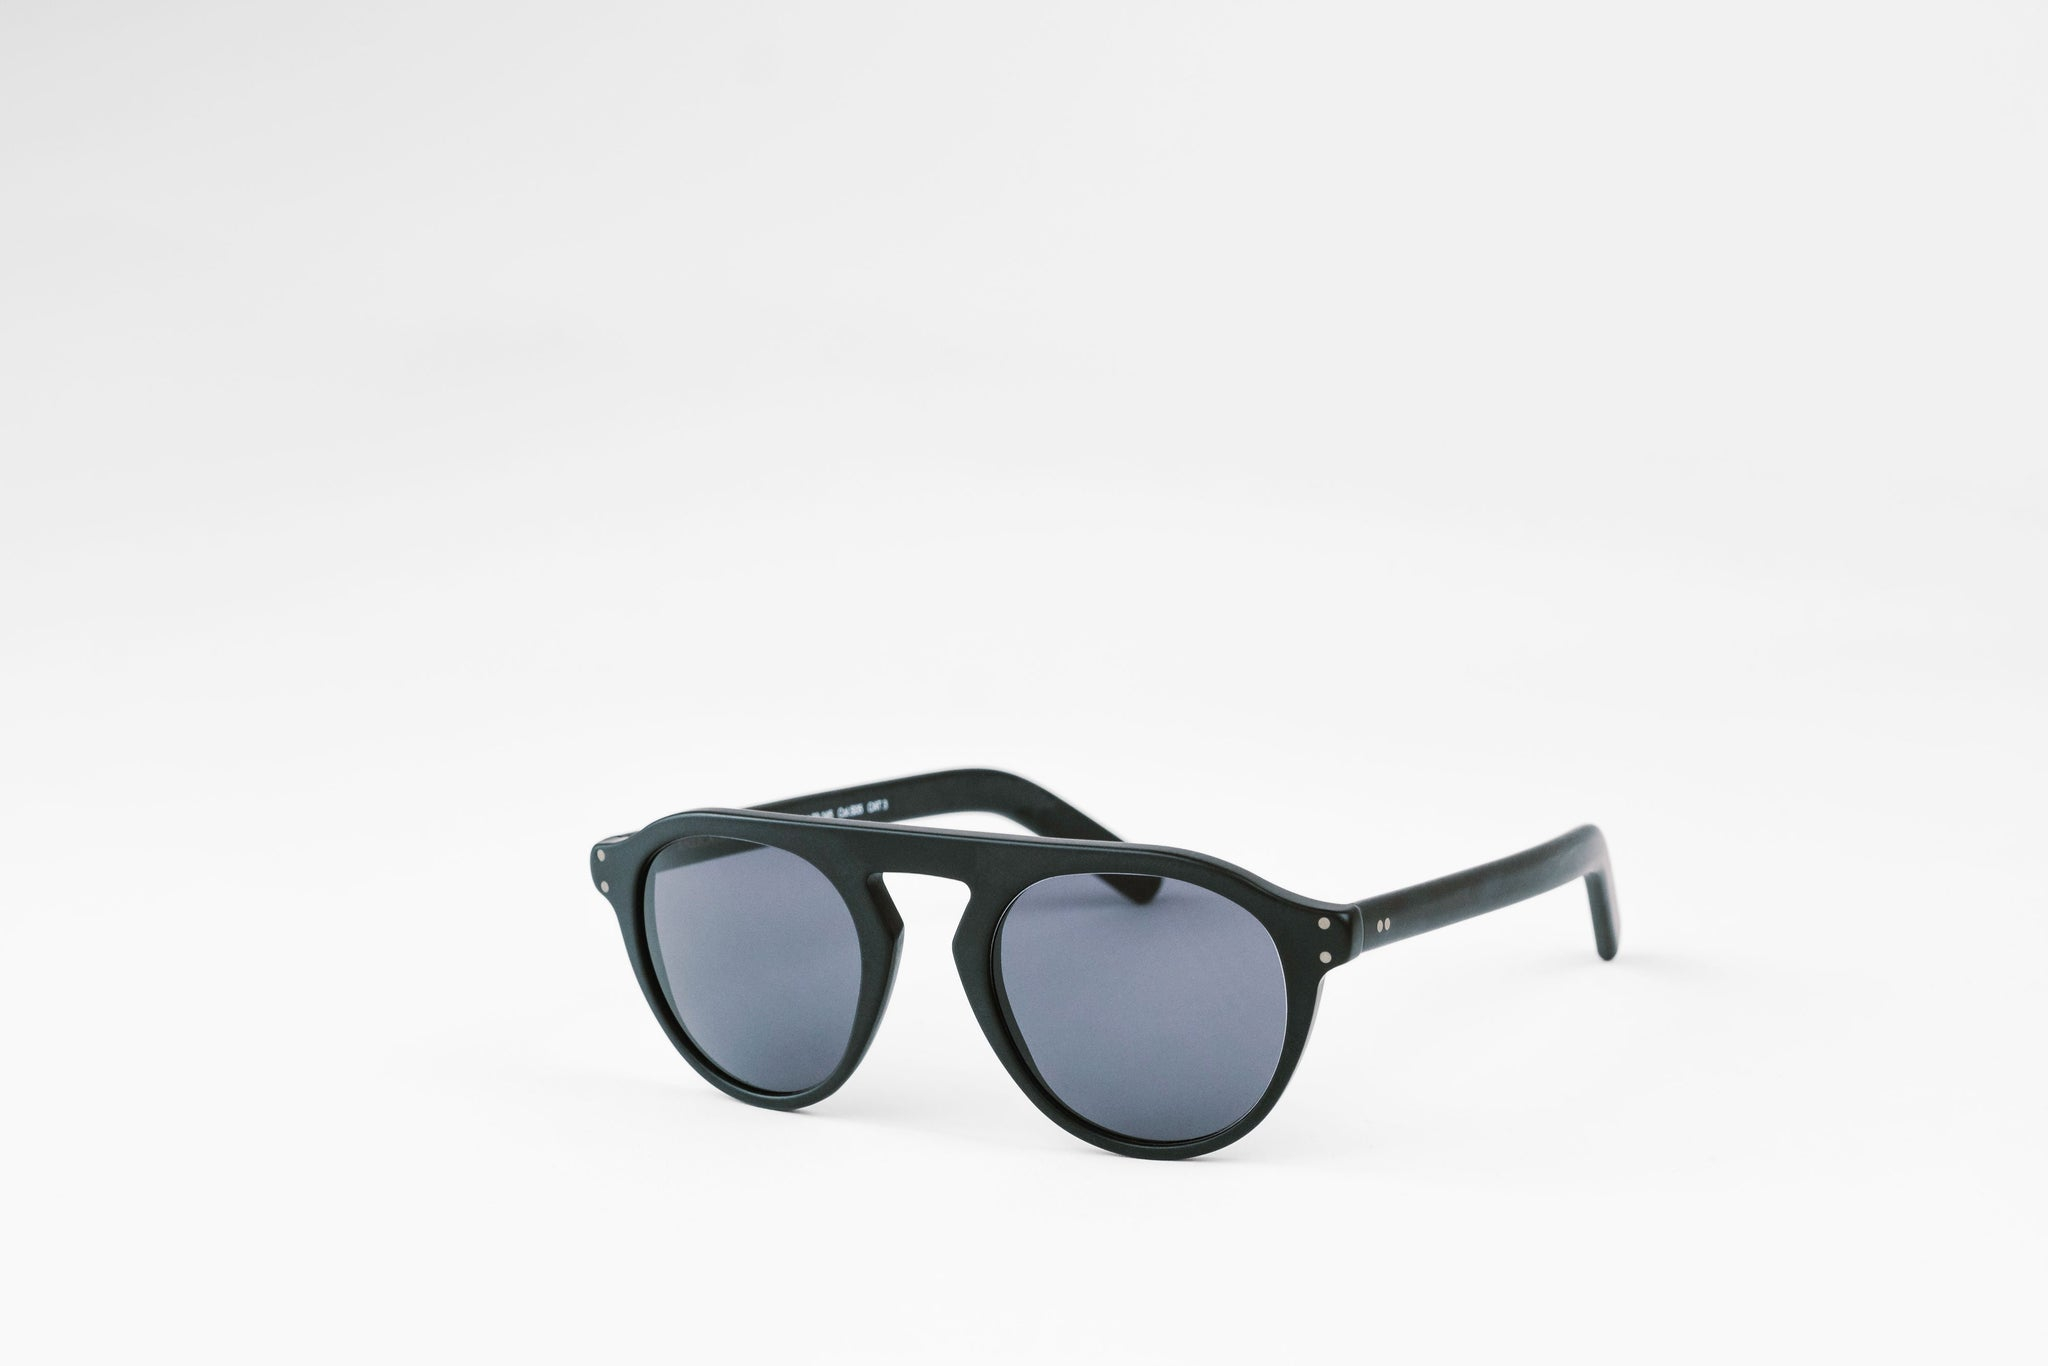 Miller Sunglasses